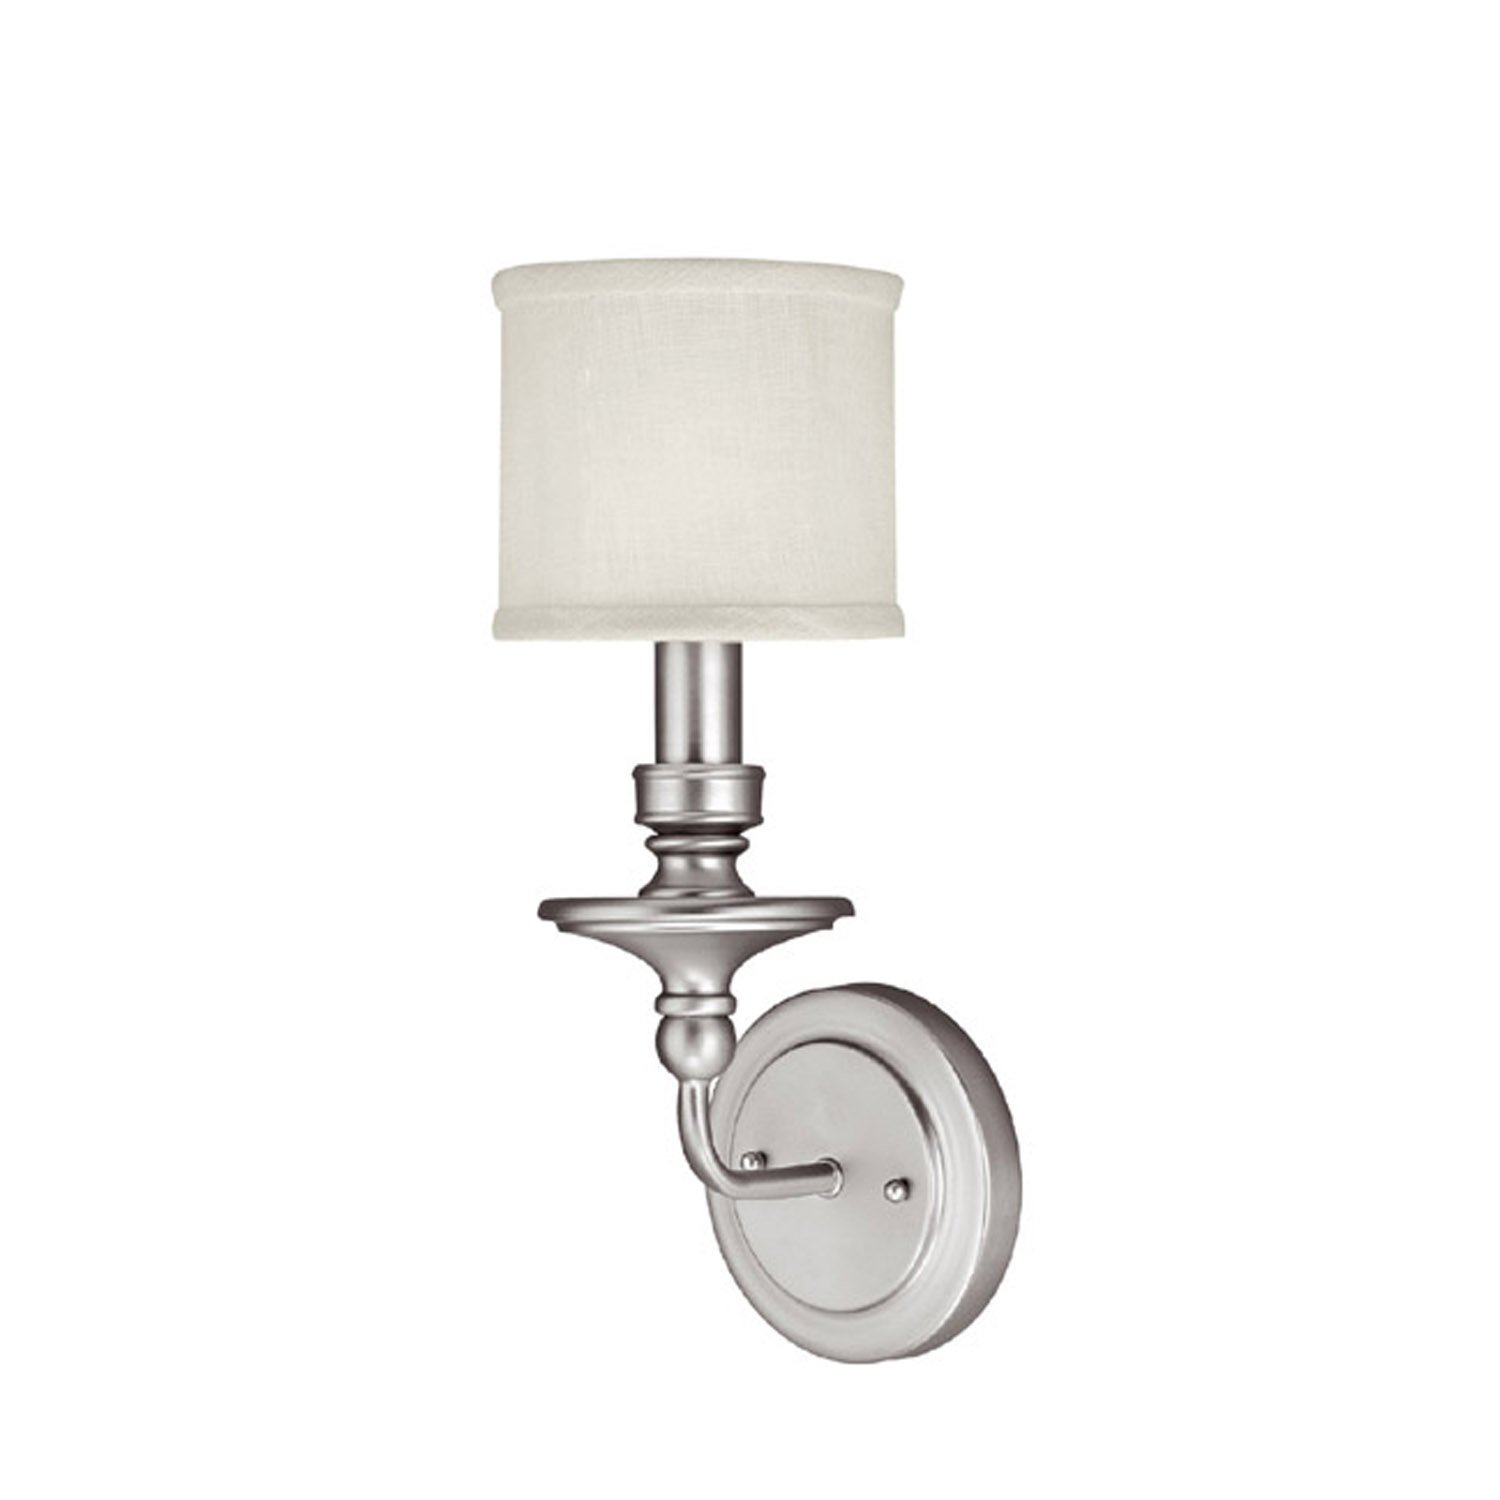 Capital Lighting 1231PN 451 Wall Sconce With White Fabric Shades Polished Nickel Finish